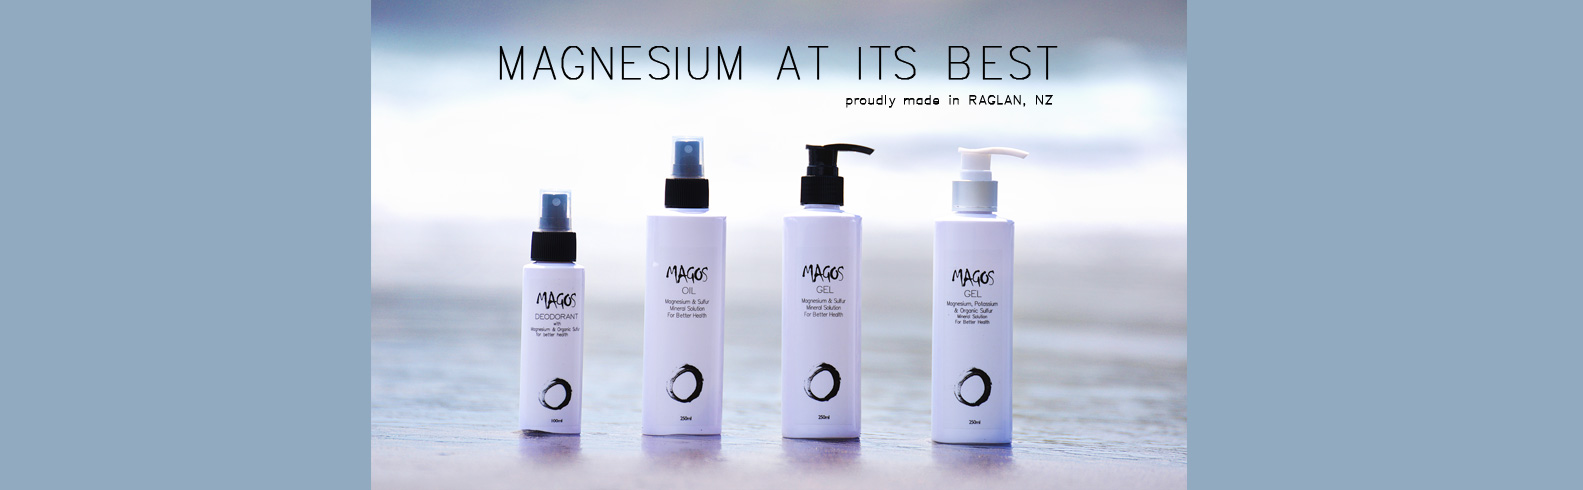 Magos magnesium solutions website header